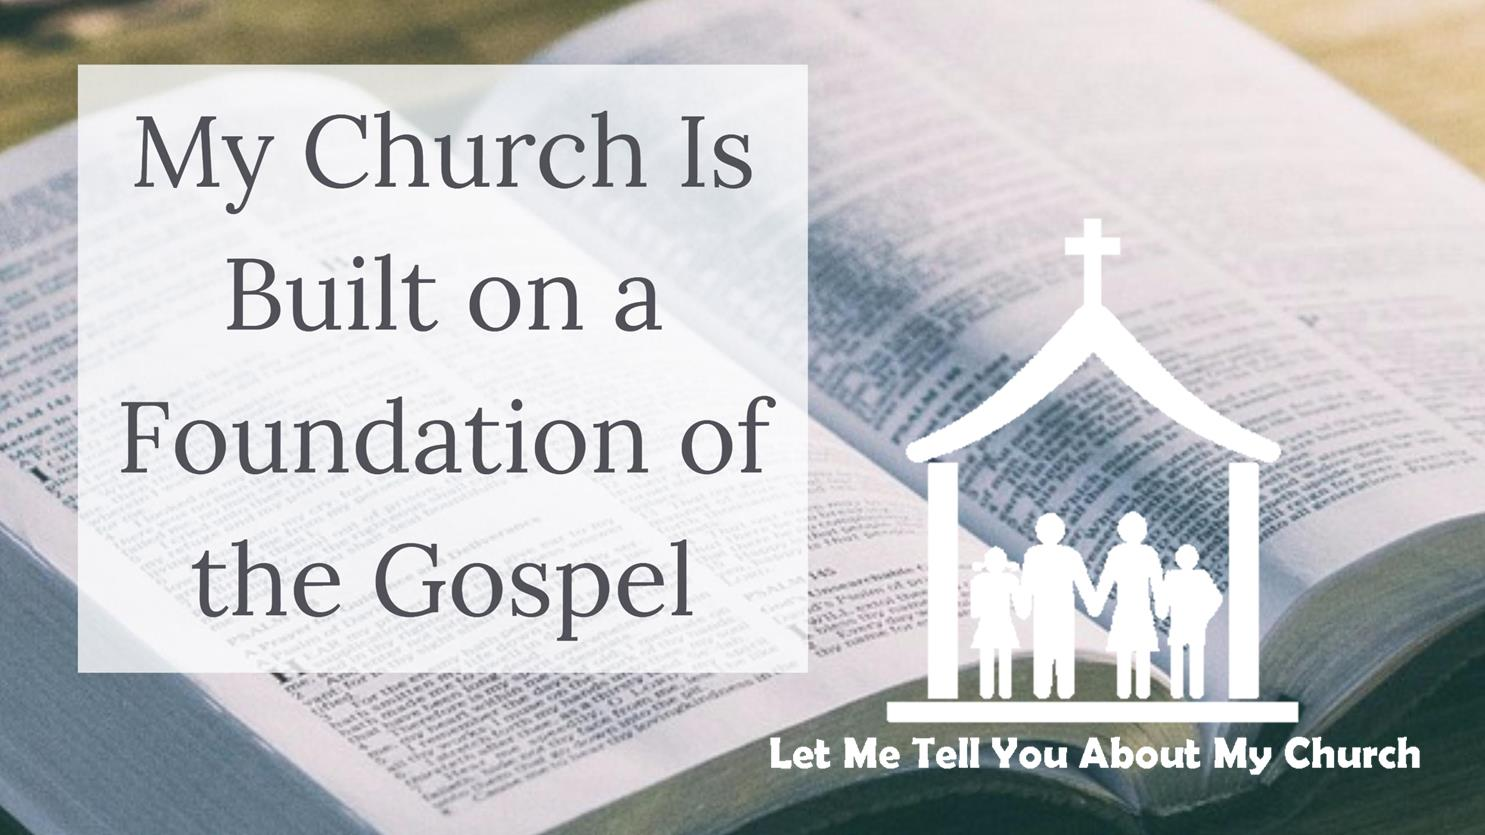 My Church is Built on a Foundation of the Gospel